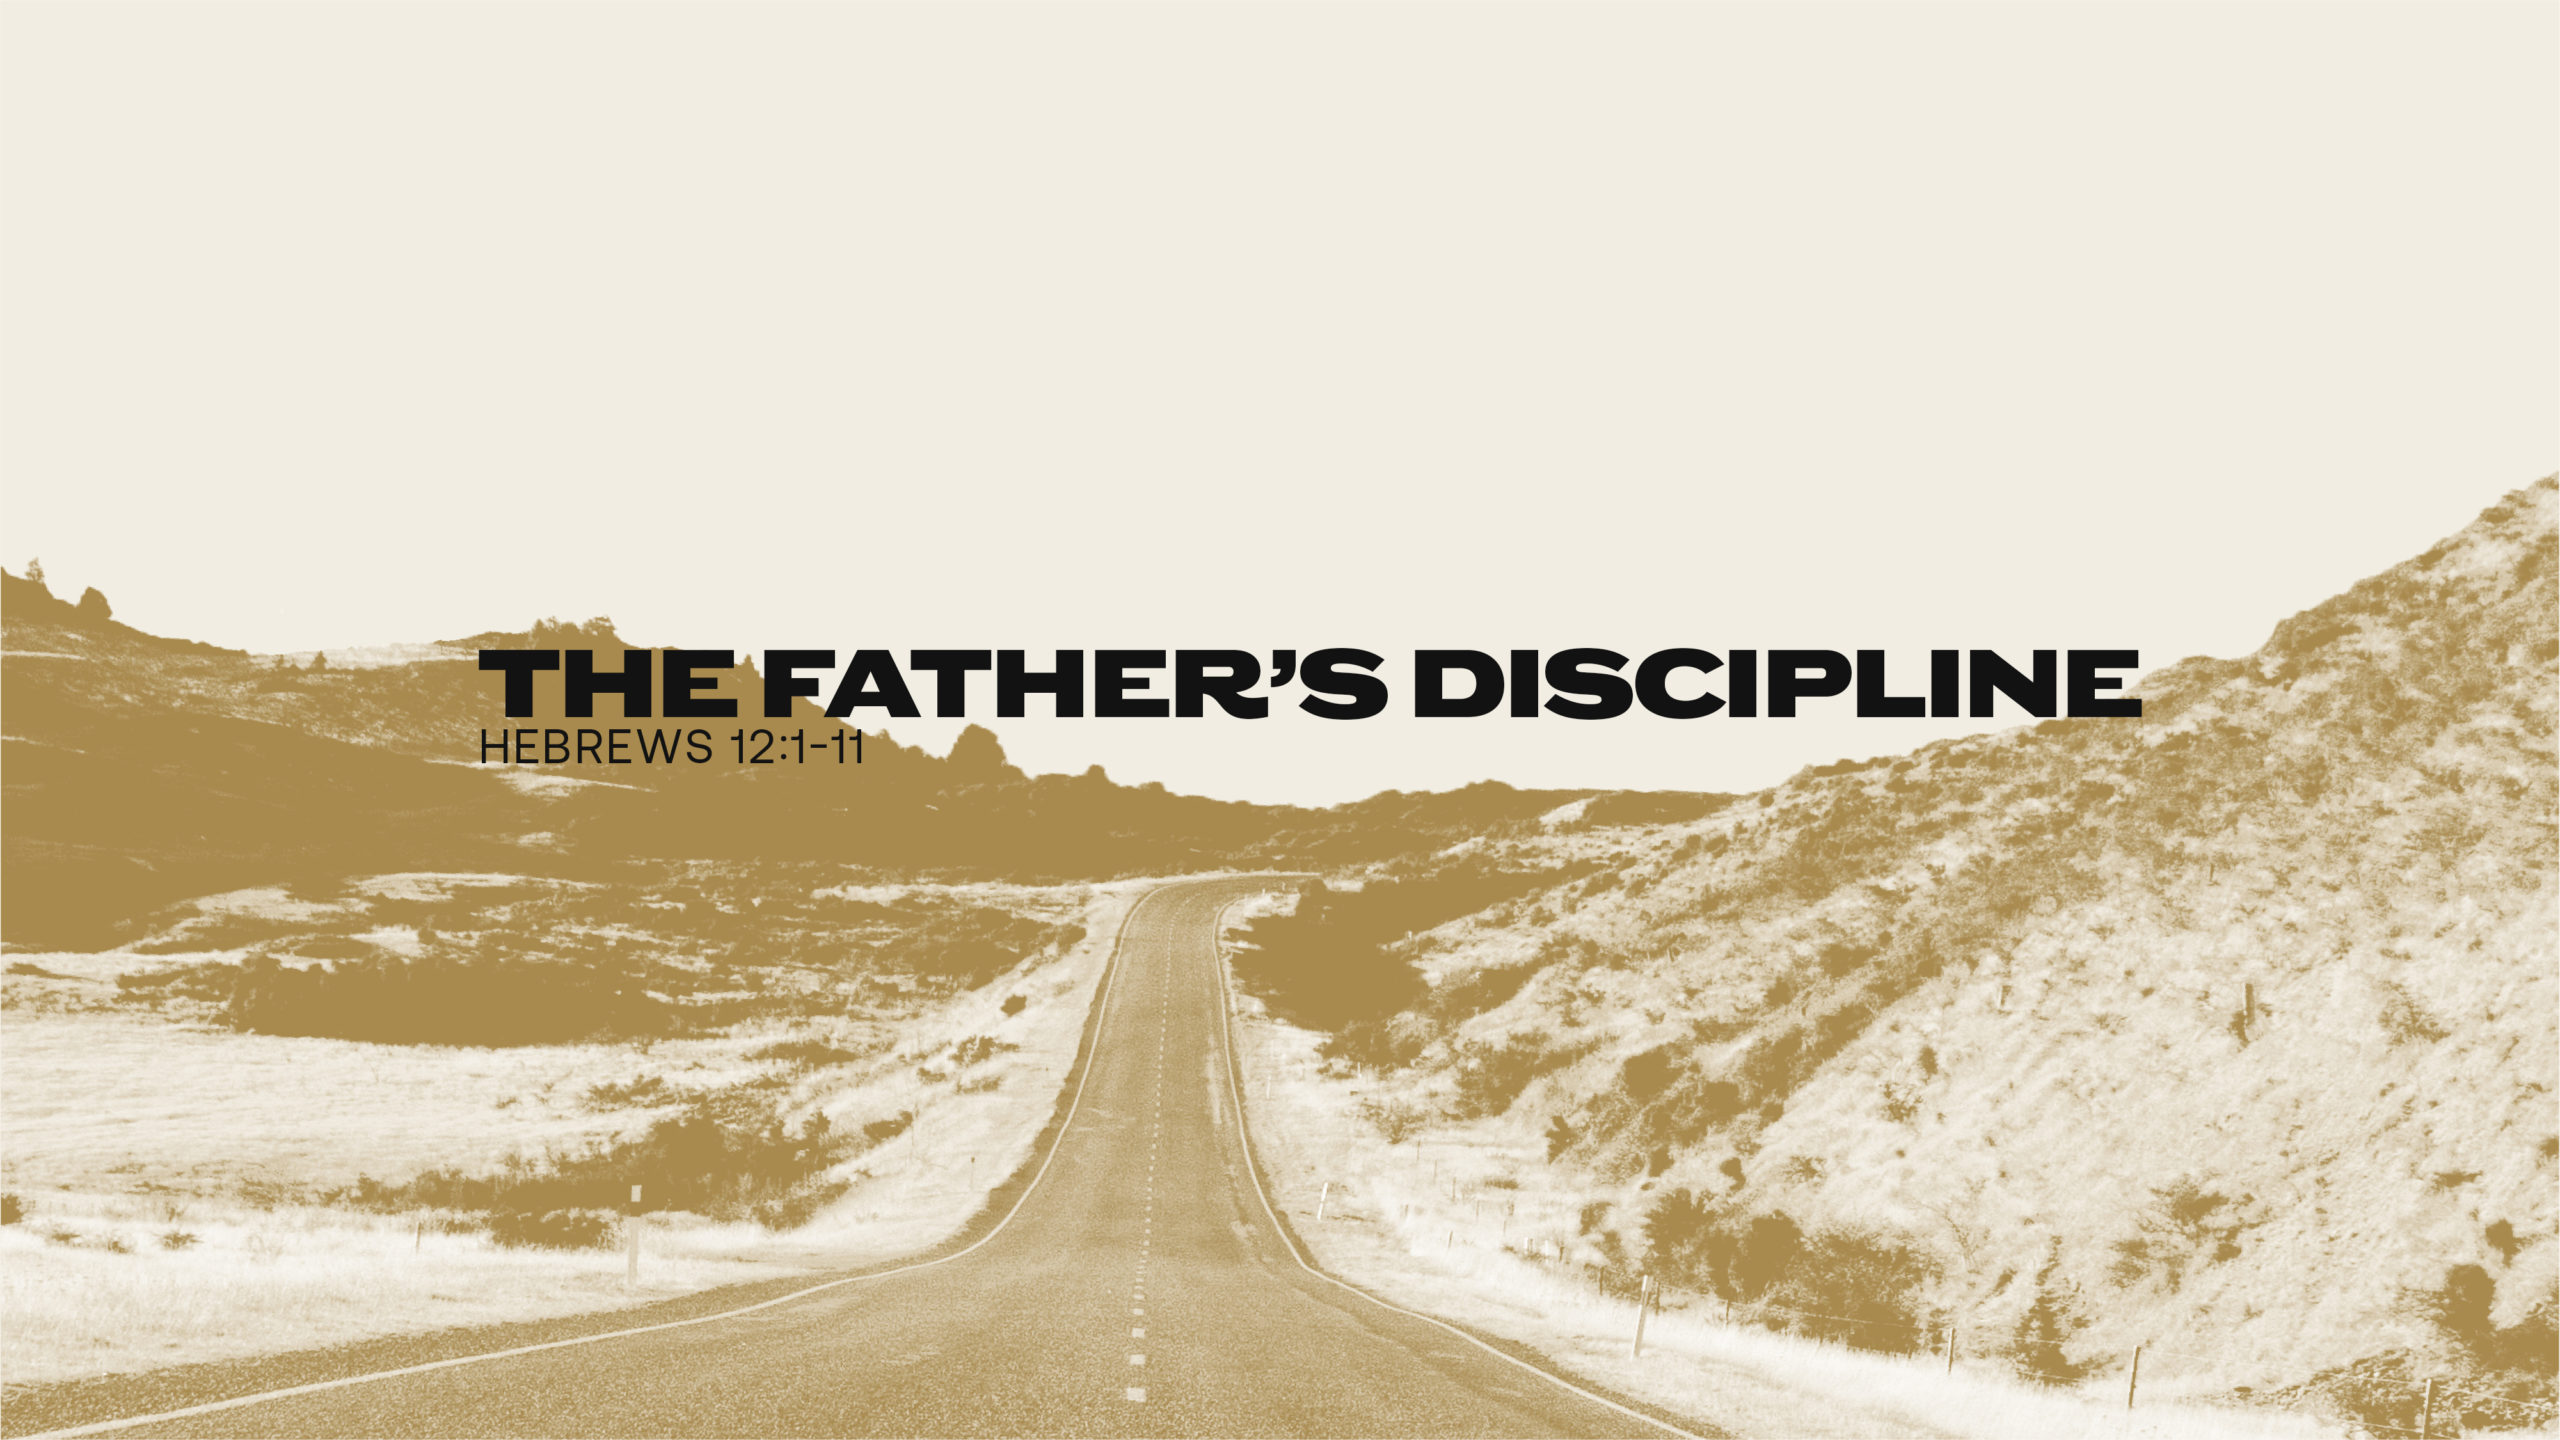 The Father's Discipline